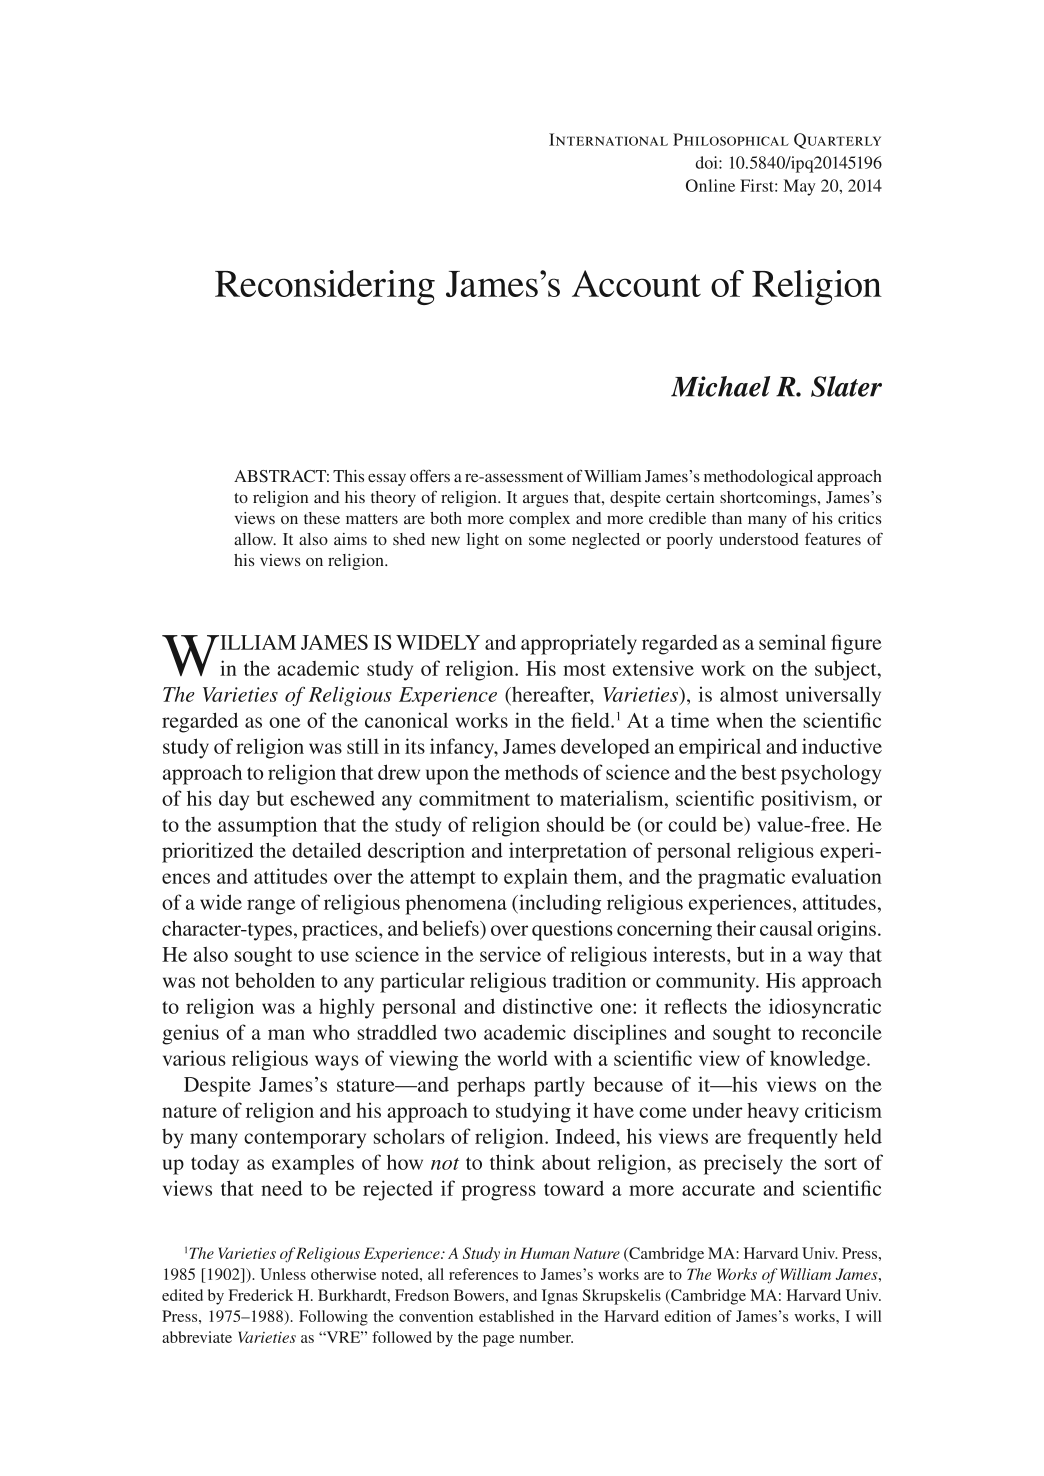 reconsidering james s account of religion michael r slater document is being loaded